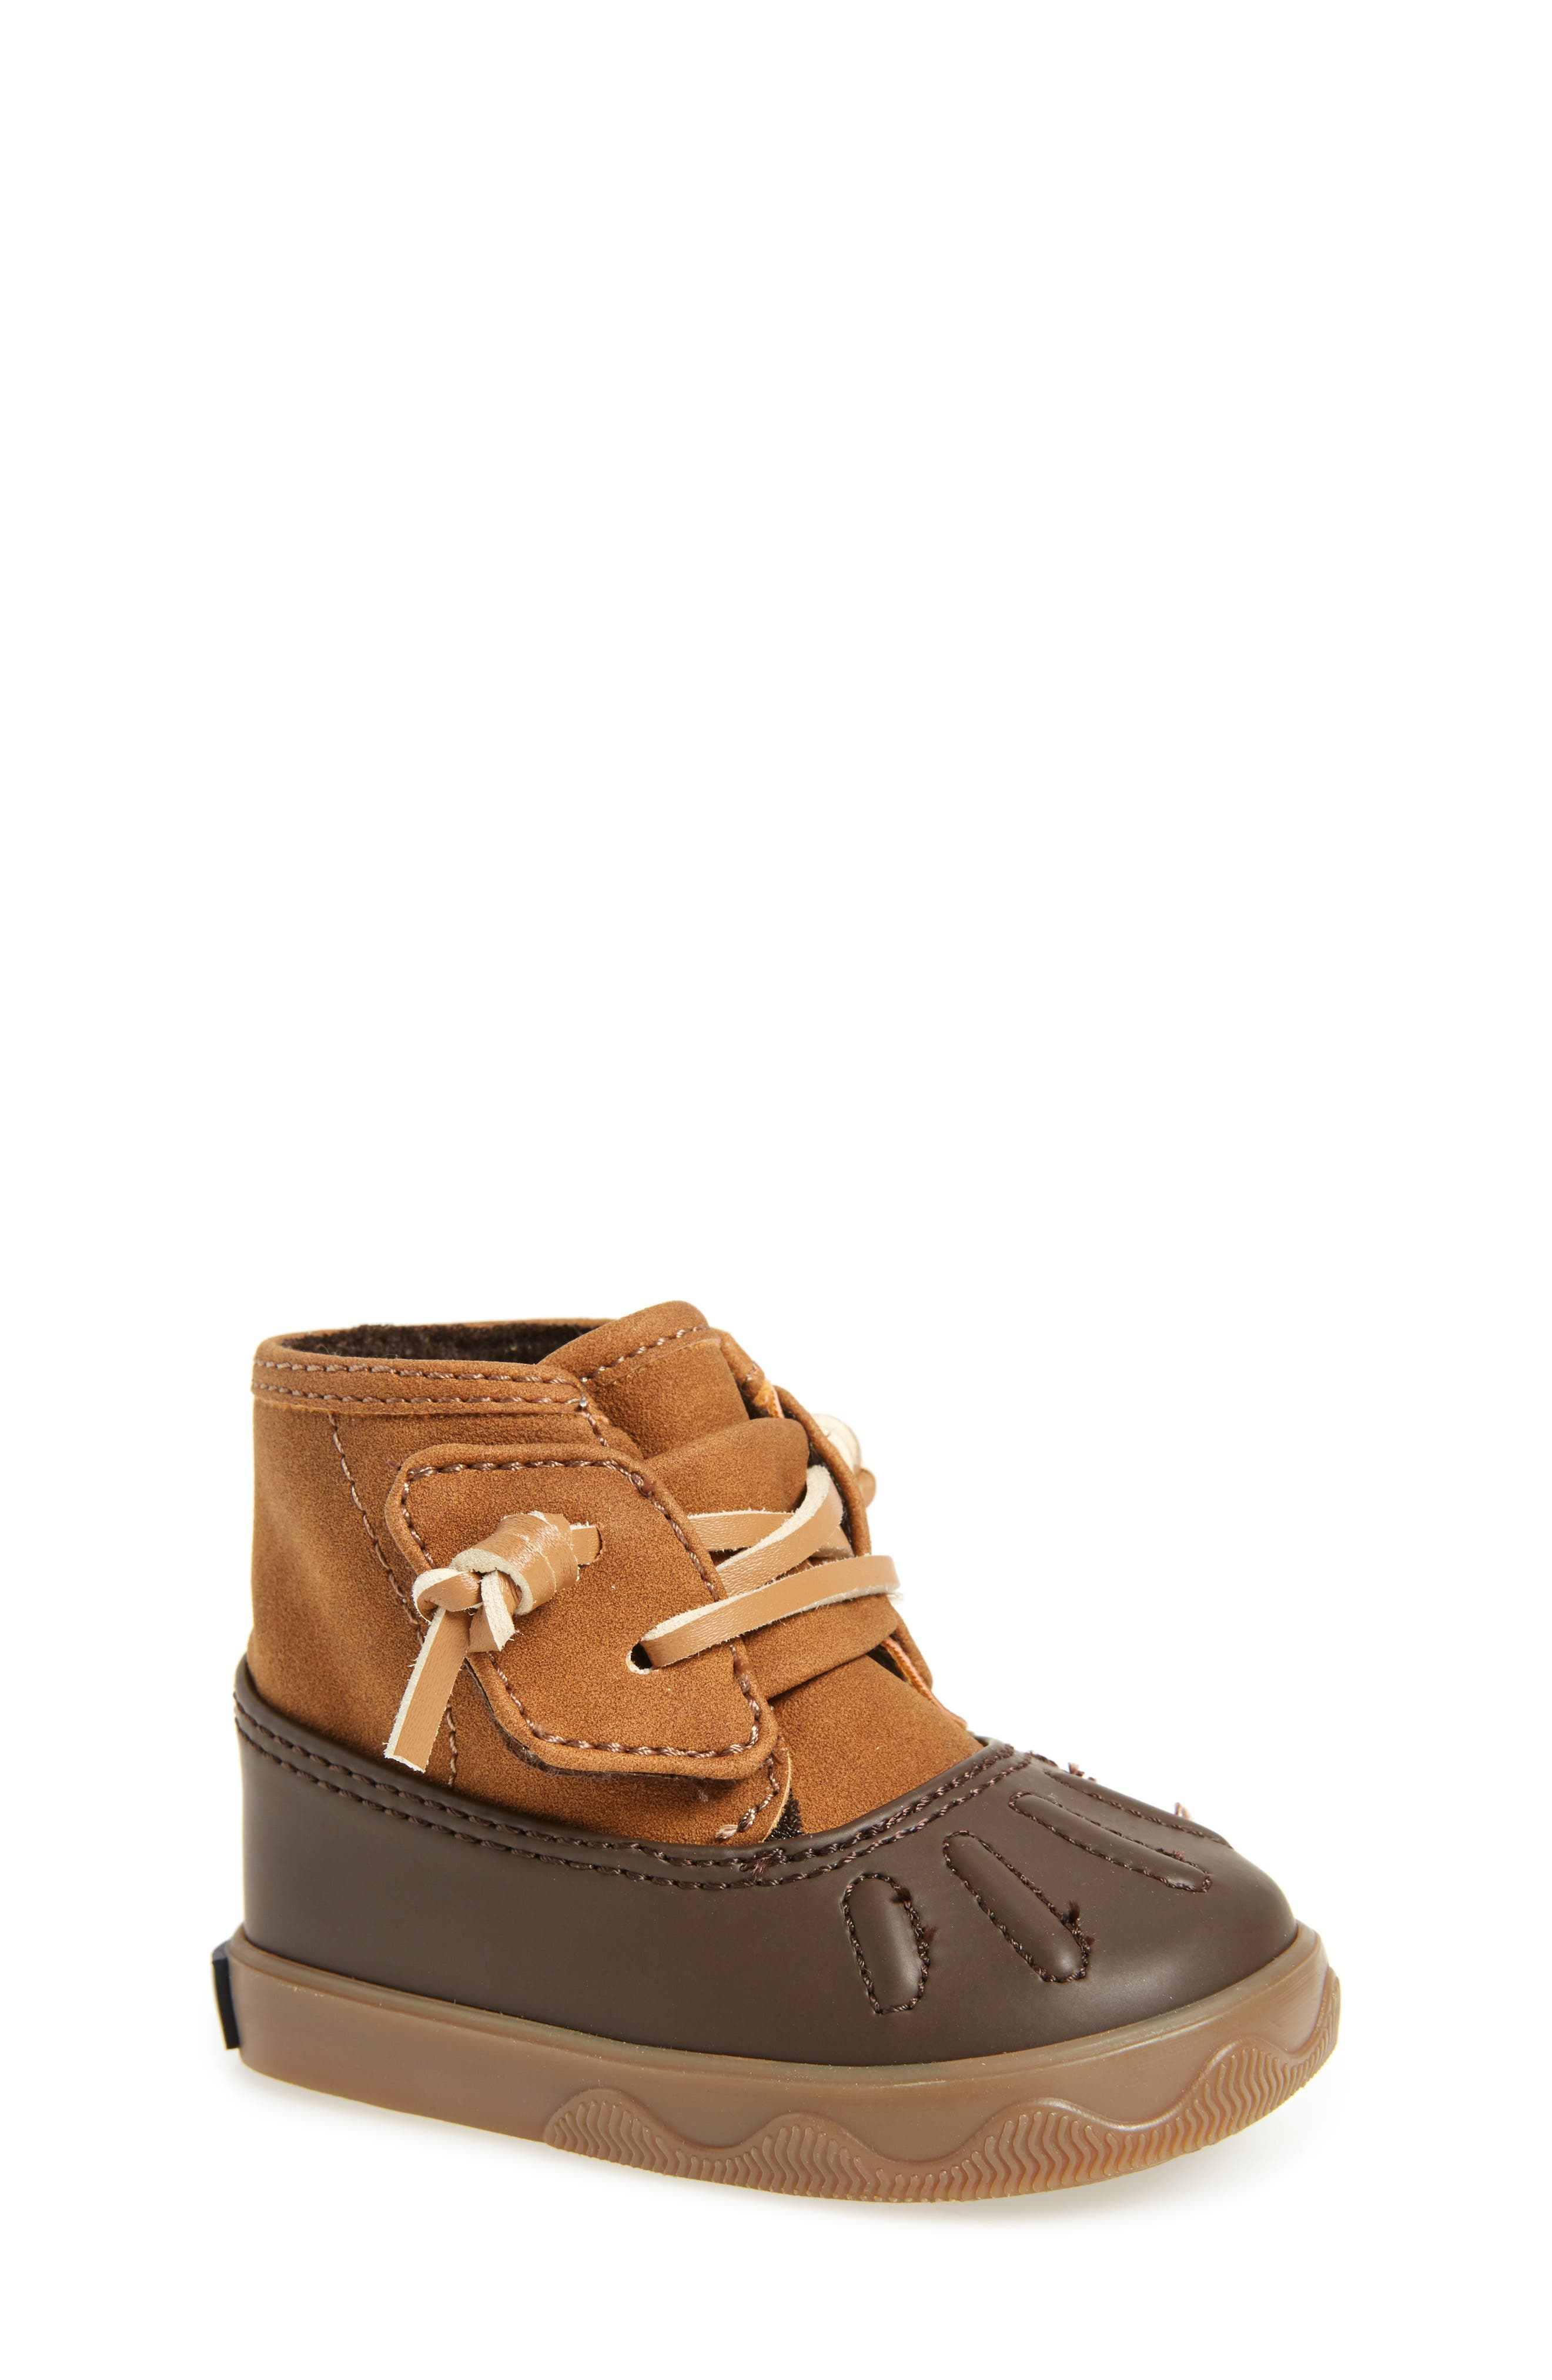 Sperry Icestorm Crib Duck Bootie,                             Main thumbnail 1, color,                             TAN/ BROWN